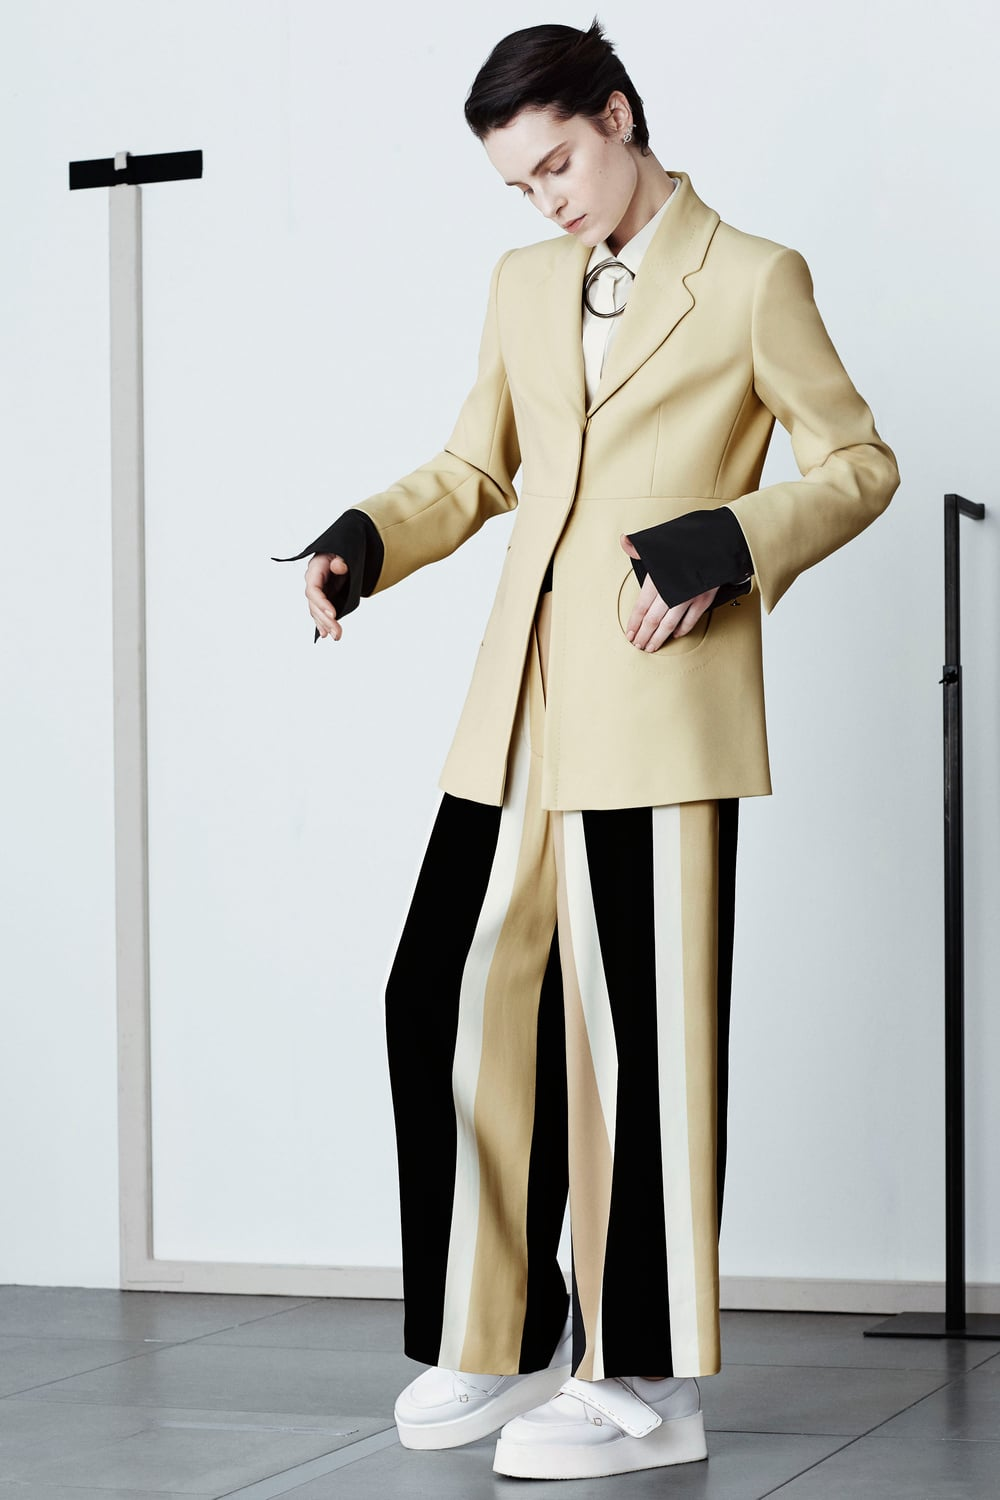 sportmax-pre-fall-2016-lookbook-16.jpg